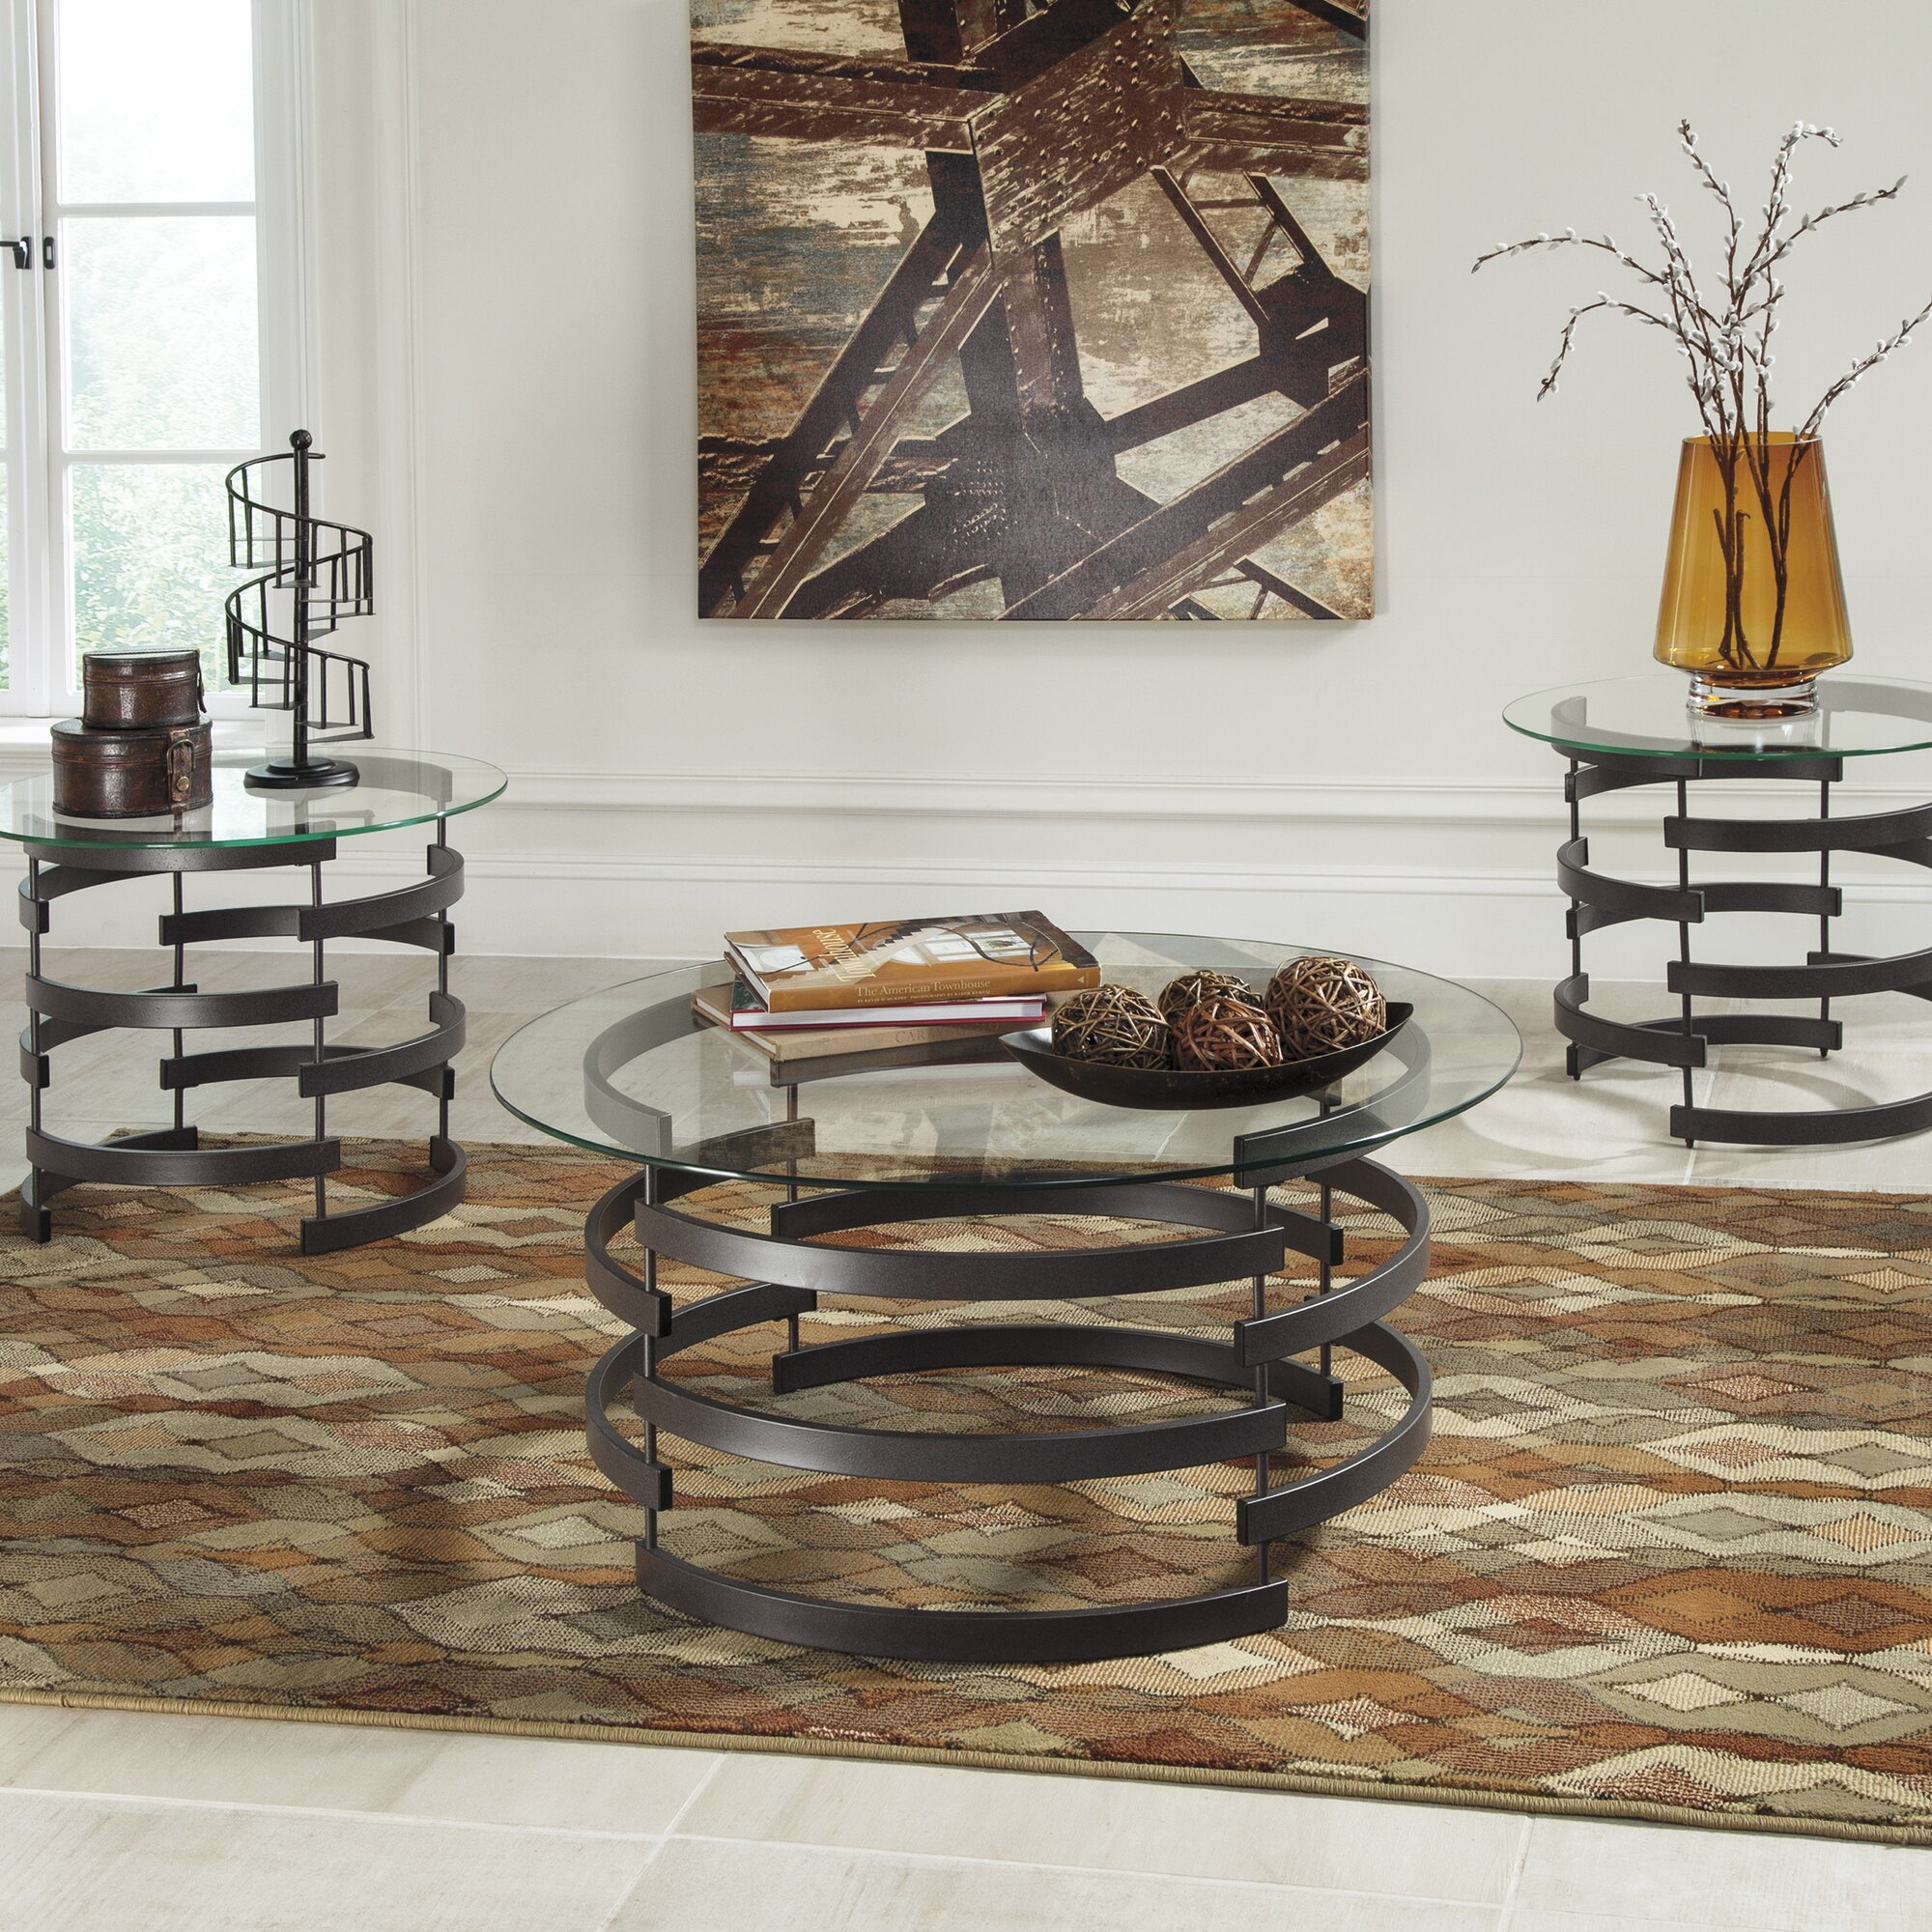 Black coffee table set - Quick View Bailey 3 Piece Coffee Table Set